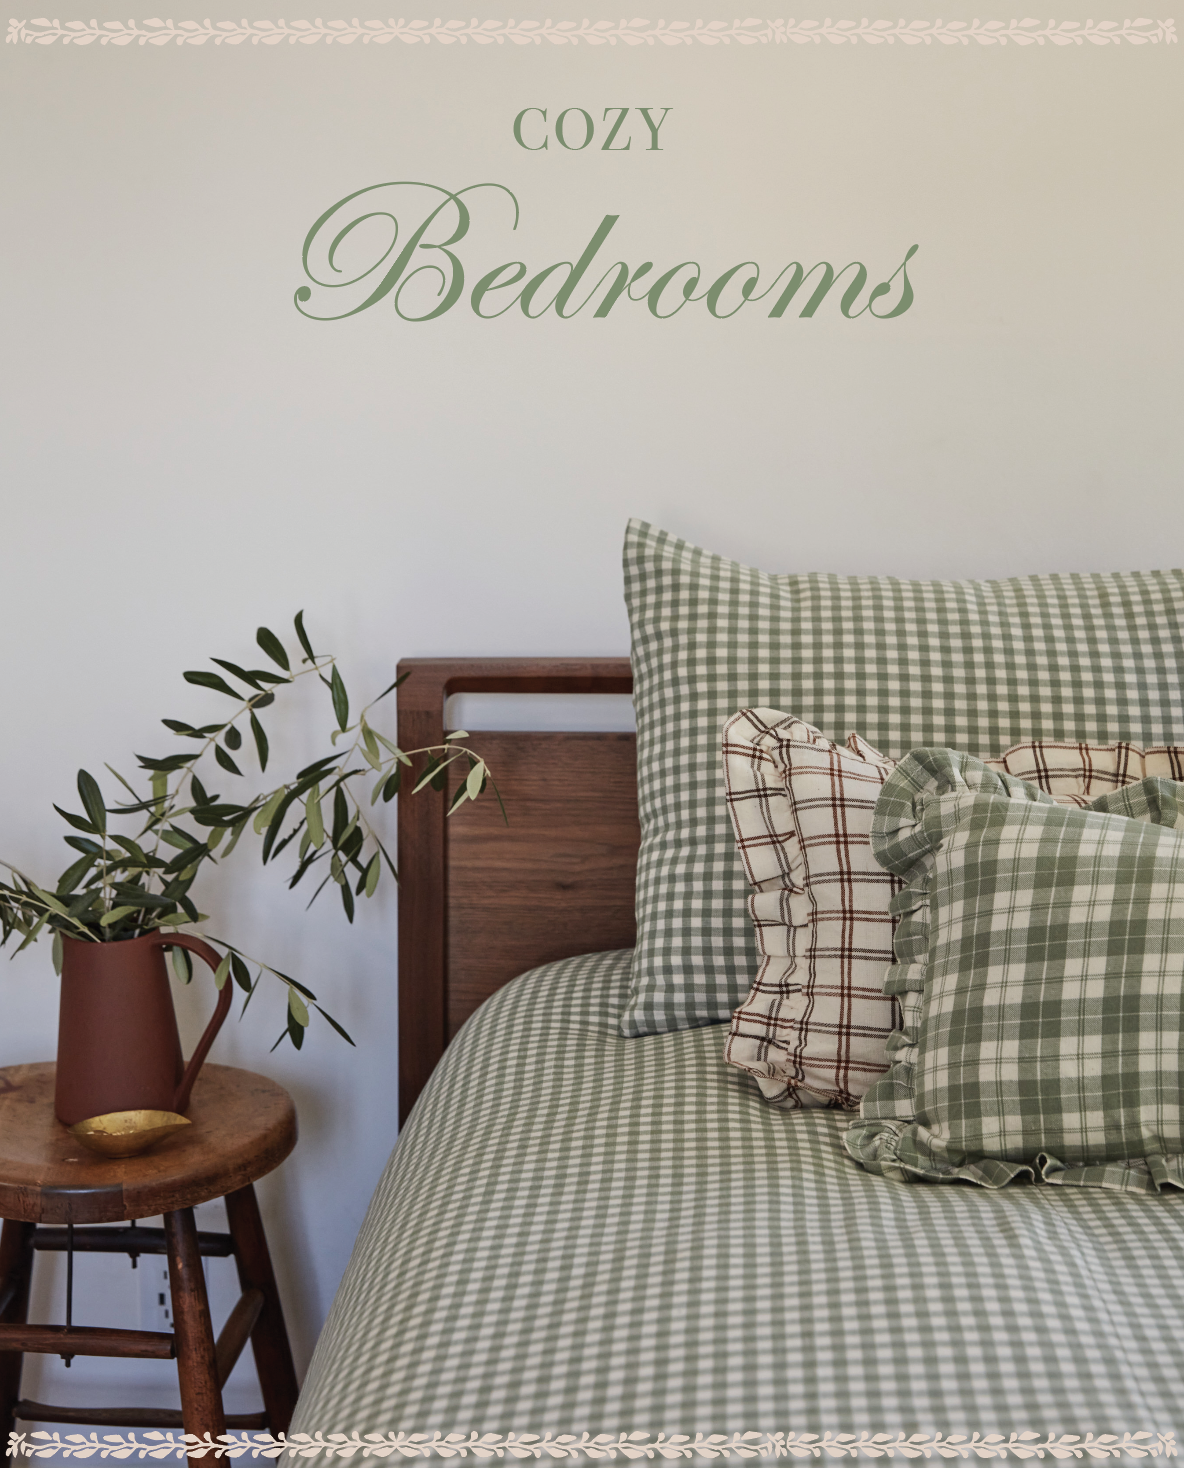 """Sage green """"Cozy Bedrooms"""" overlaid on an image of HTH Sage Green bedding and pillows"""